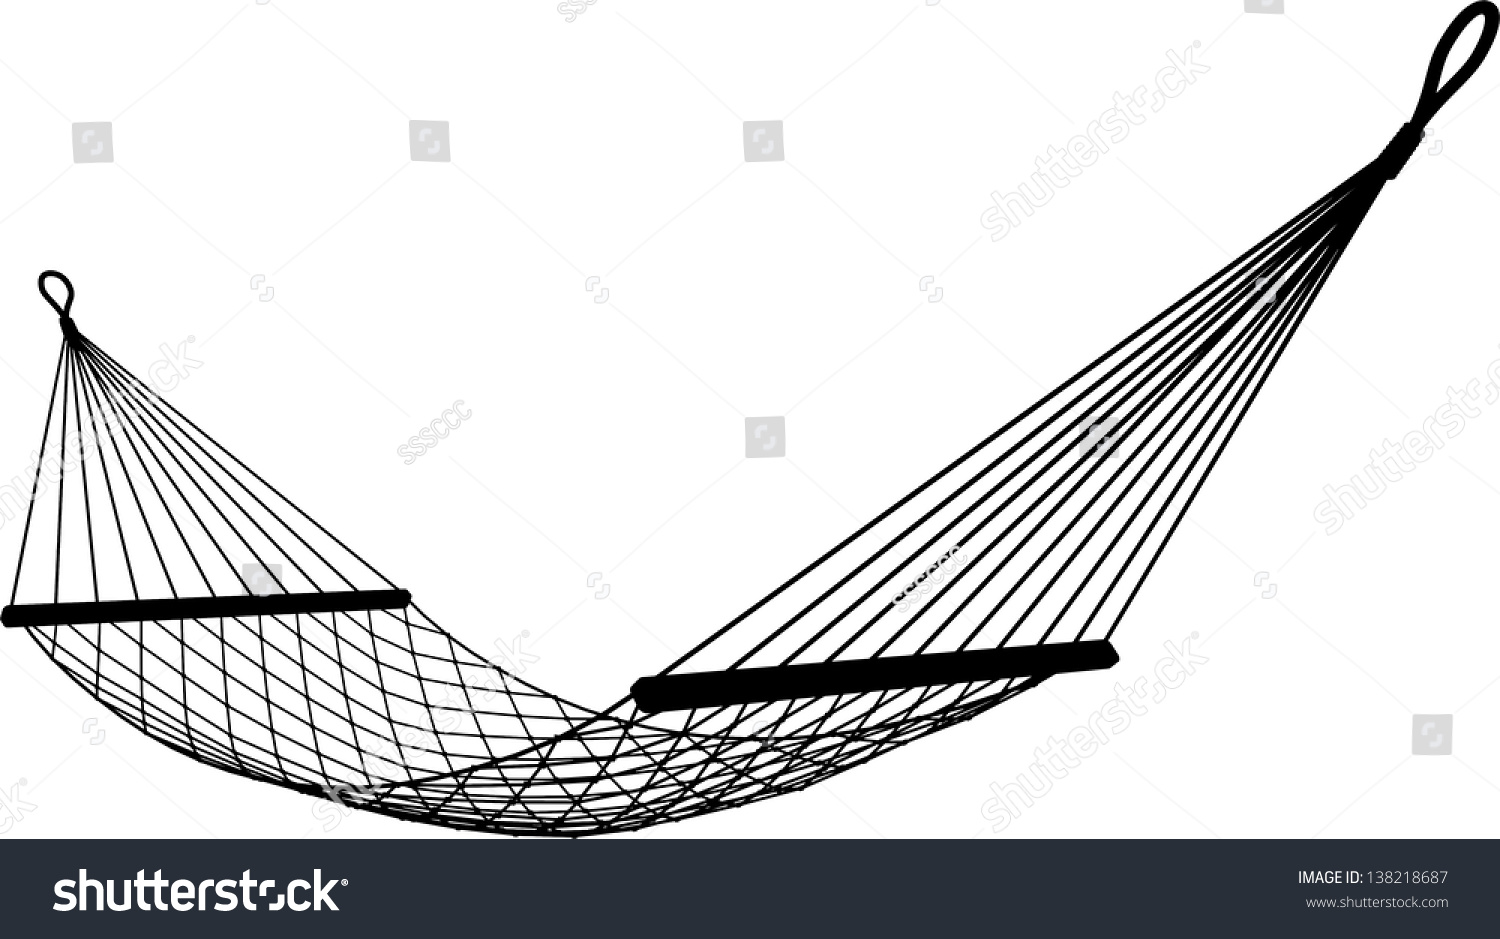 Hammock On White Background Stock Vector 138218687 - Shutterstock